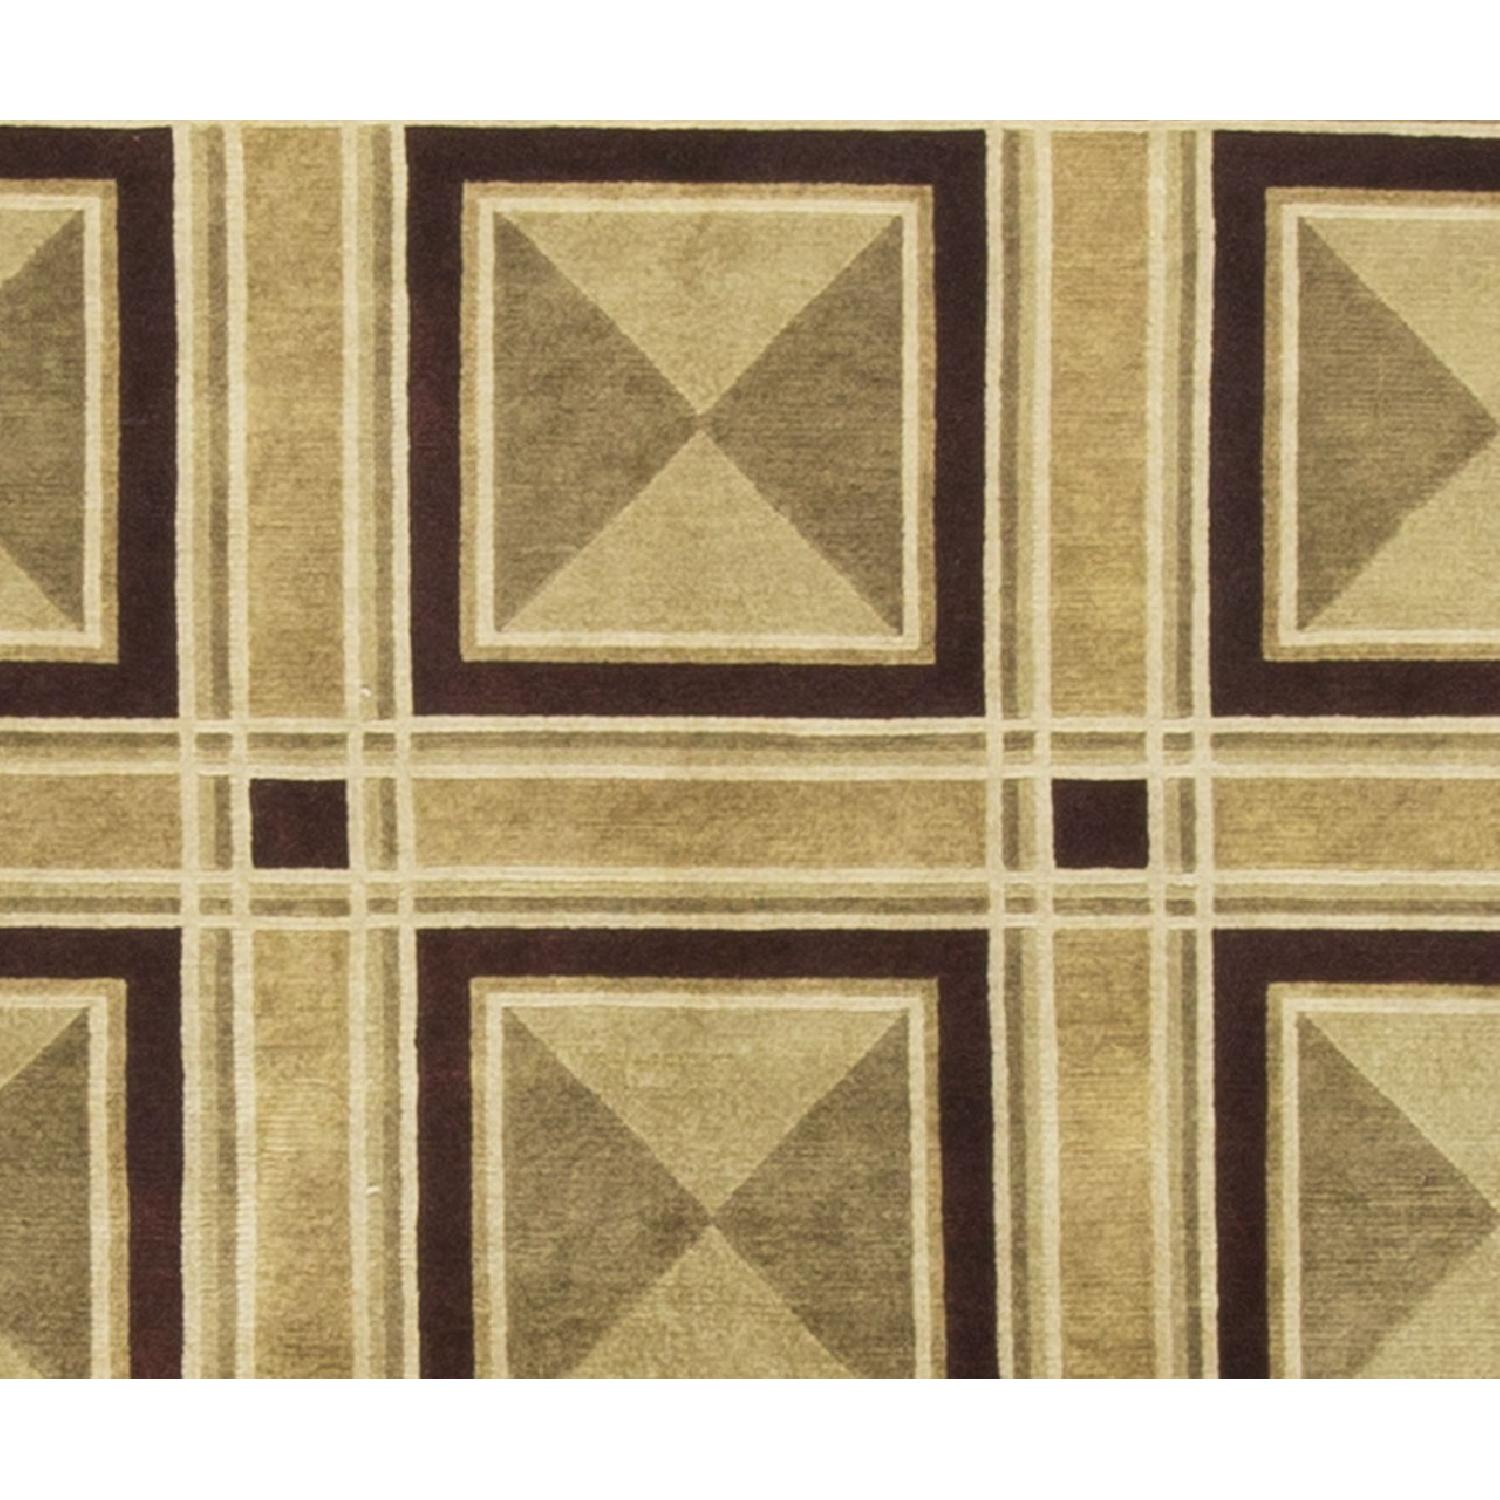 Modern Contemporary Hand Knotted Wool Rug in Black/Beige - image-2